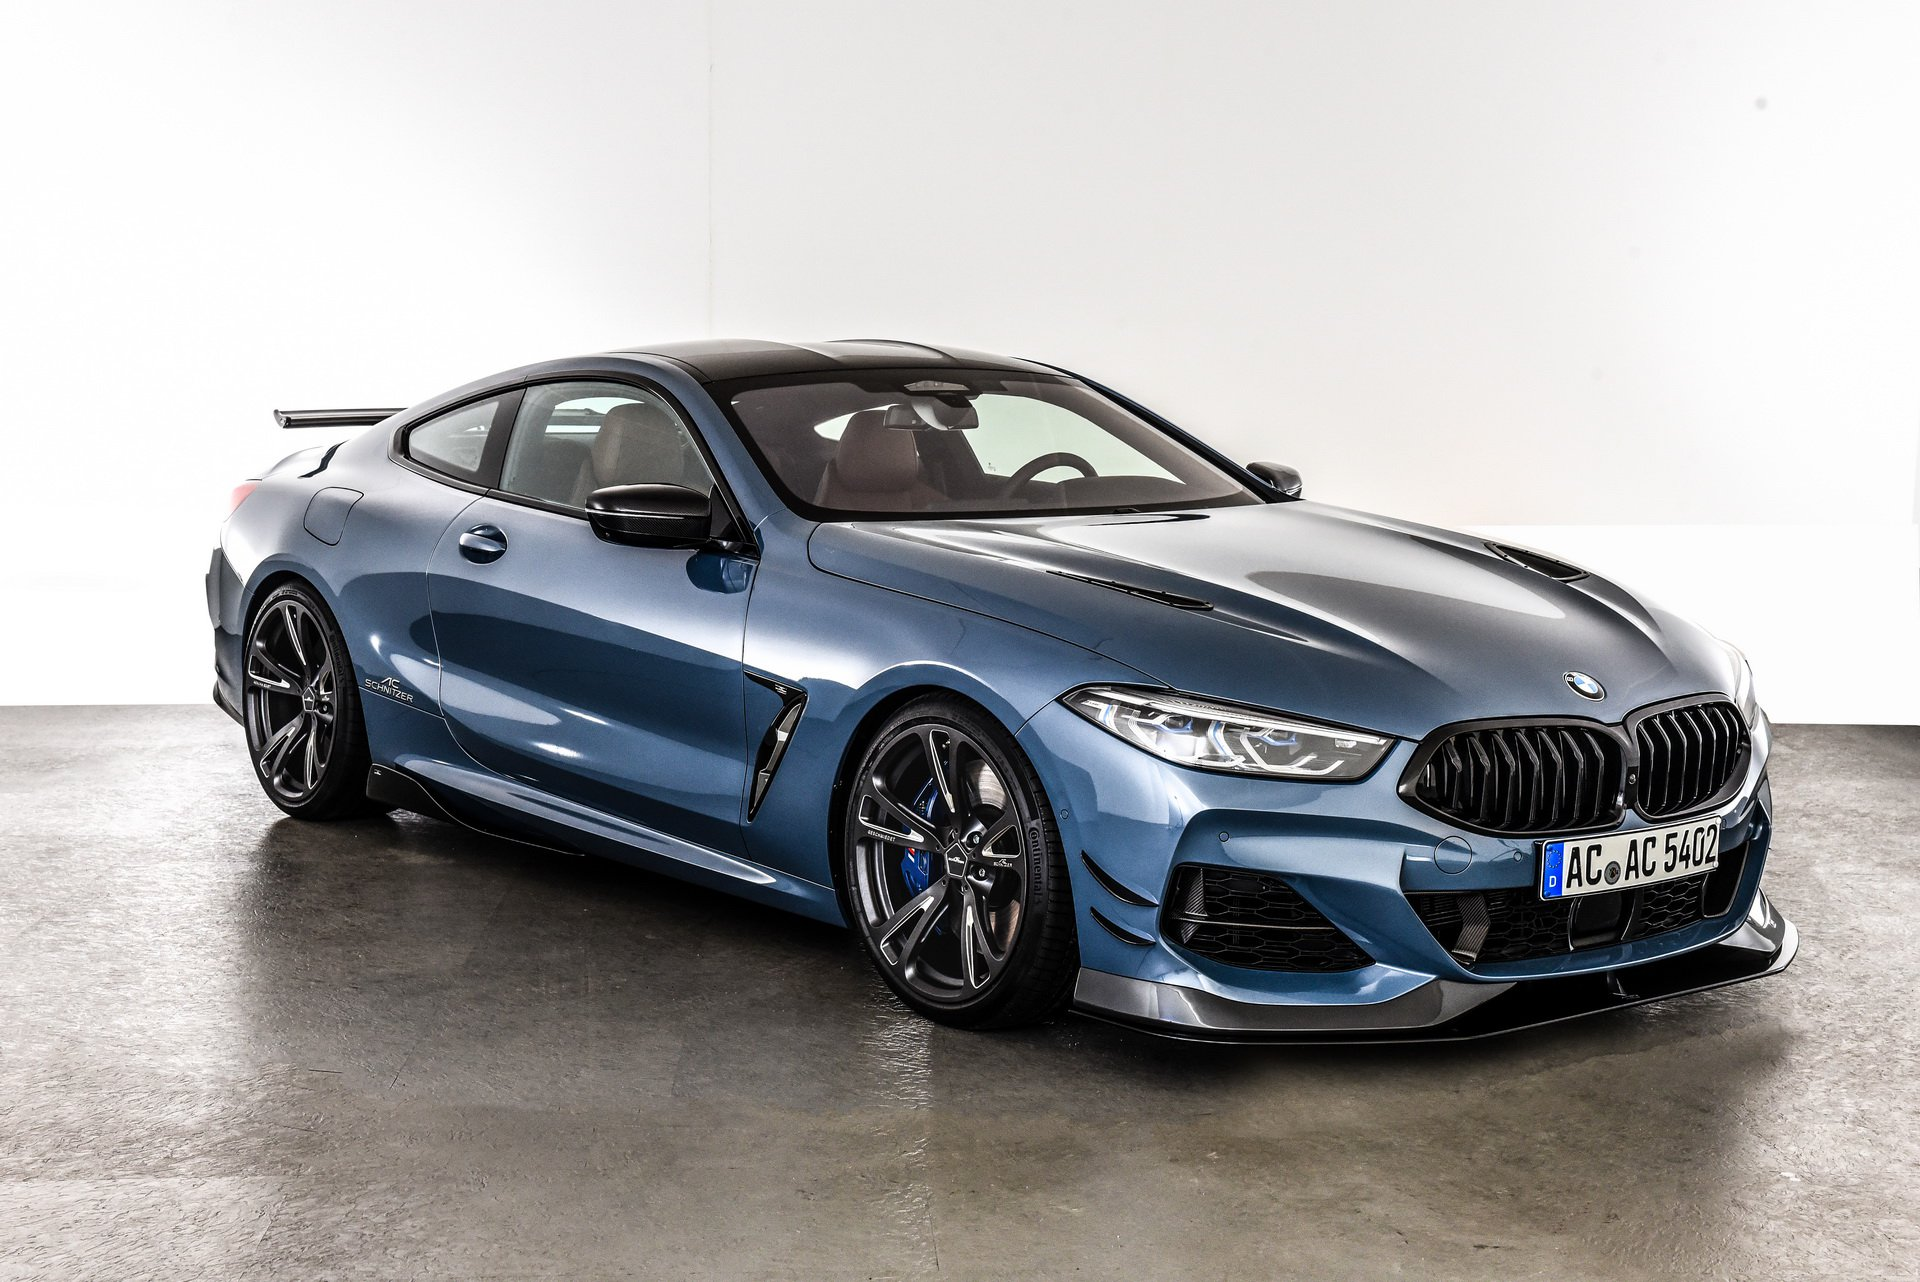 AC Schnitzer BMW 8 Series Coupe Looks Furious